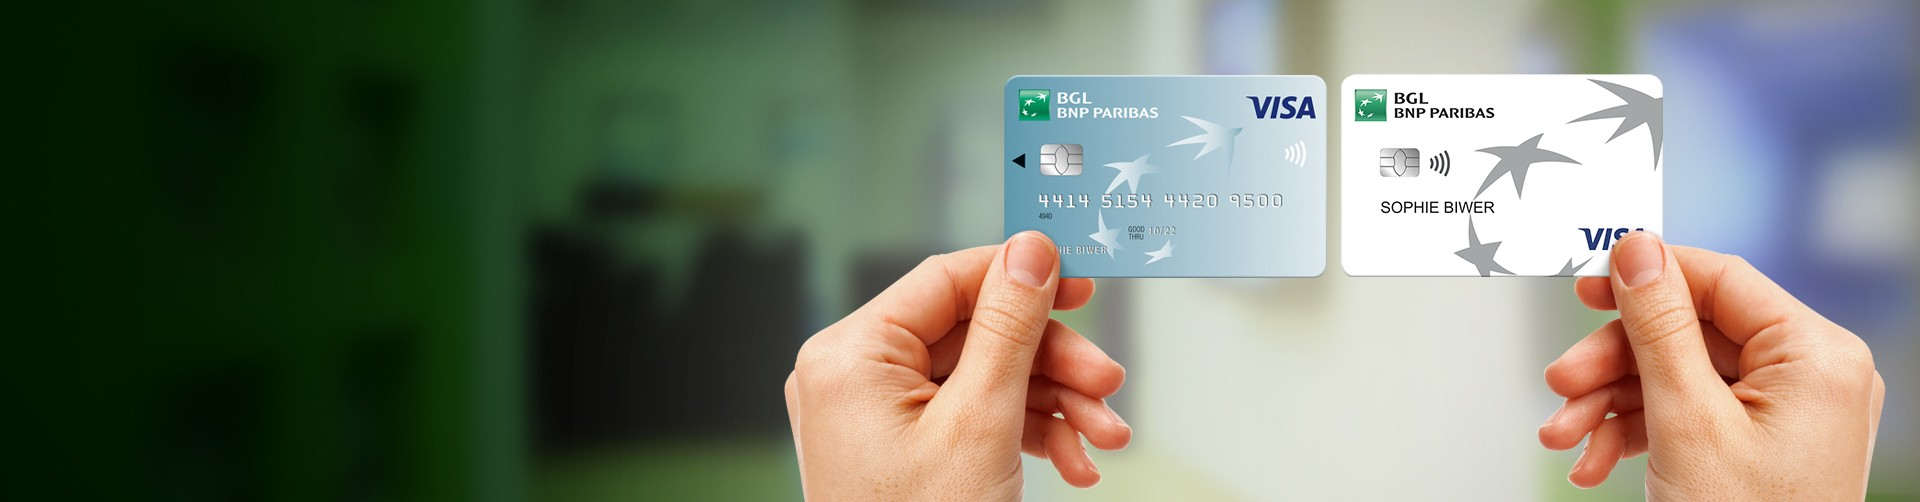 comparaison carte de credit et carte de debit BH